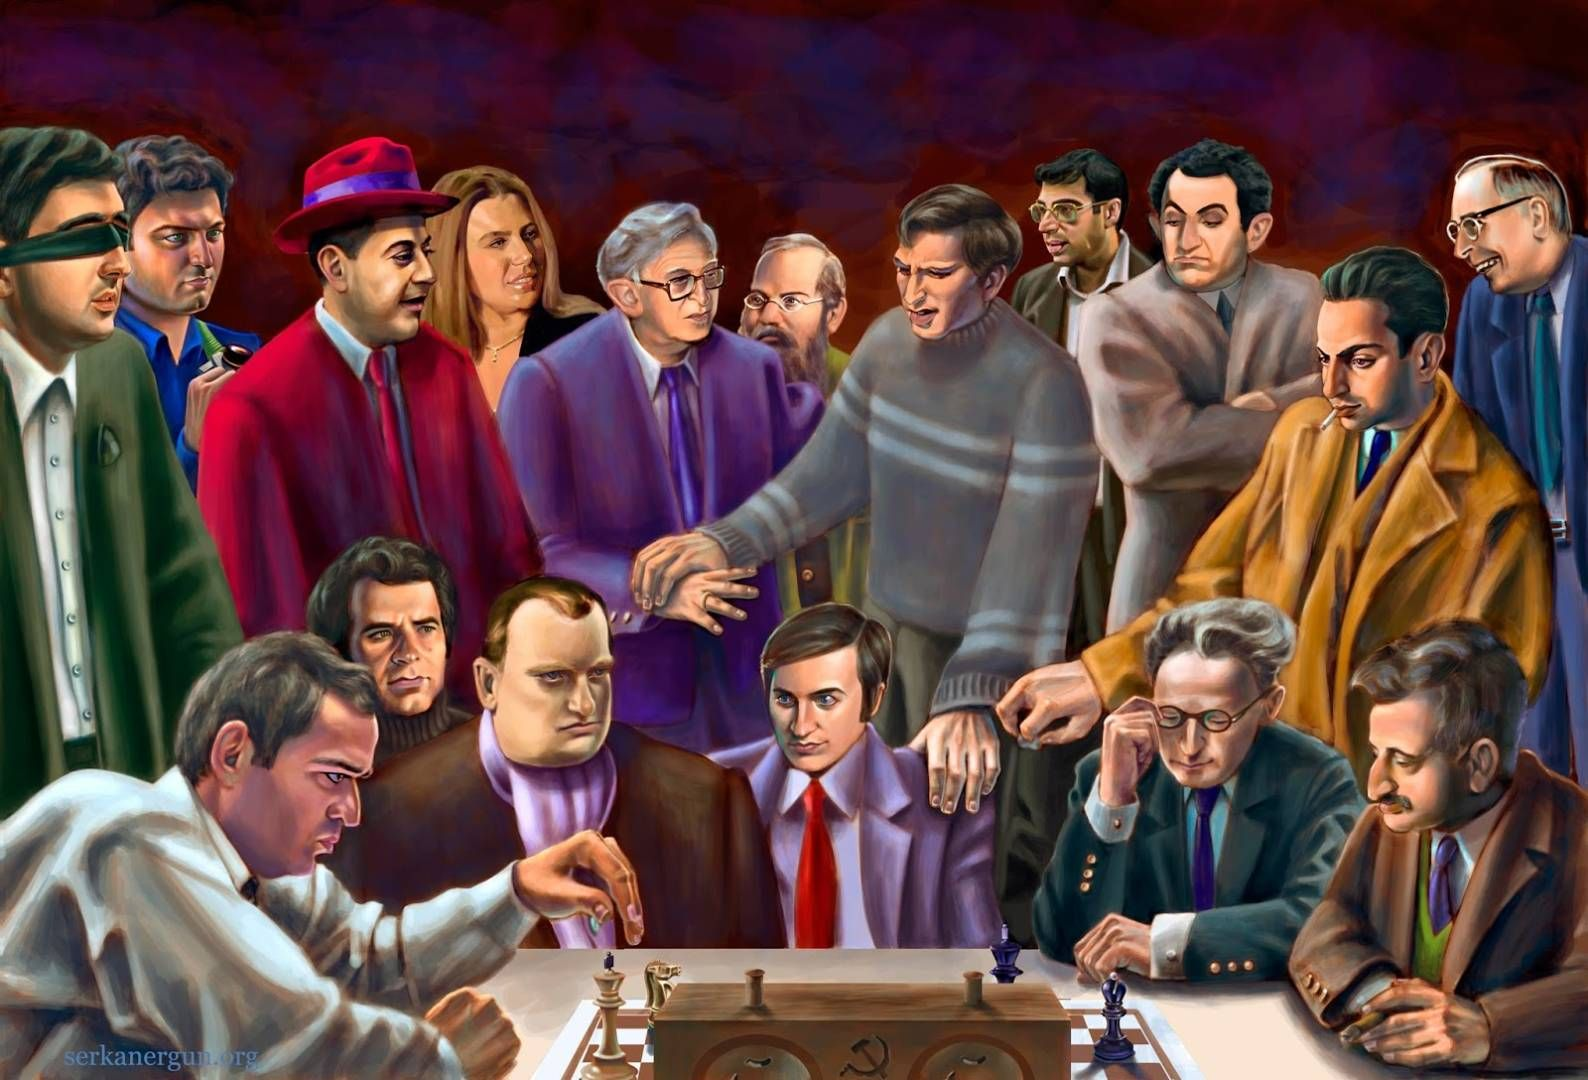 Chess miniature creating a videos of chess grand masters